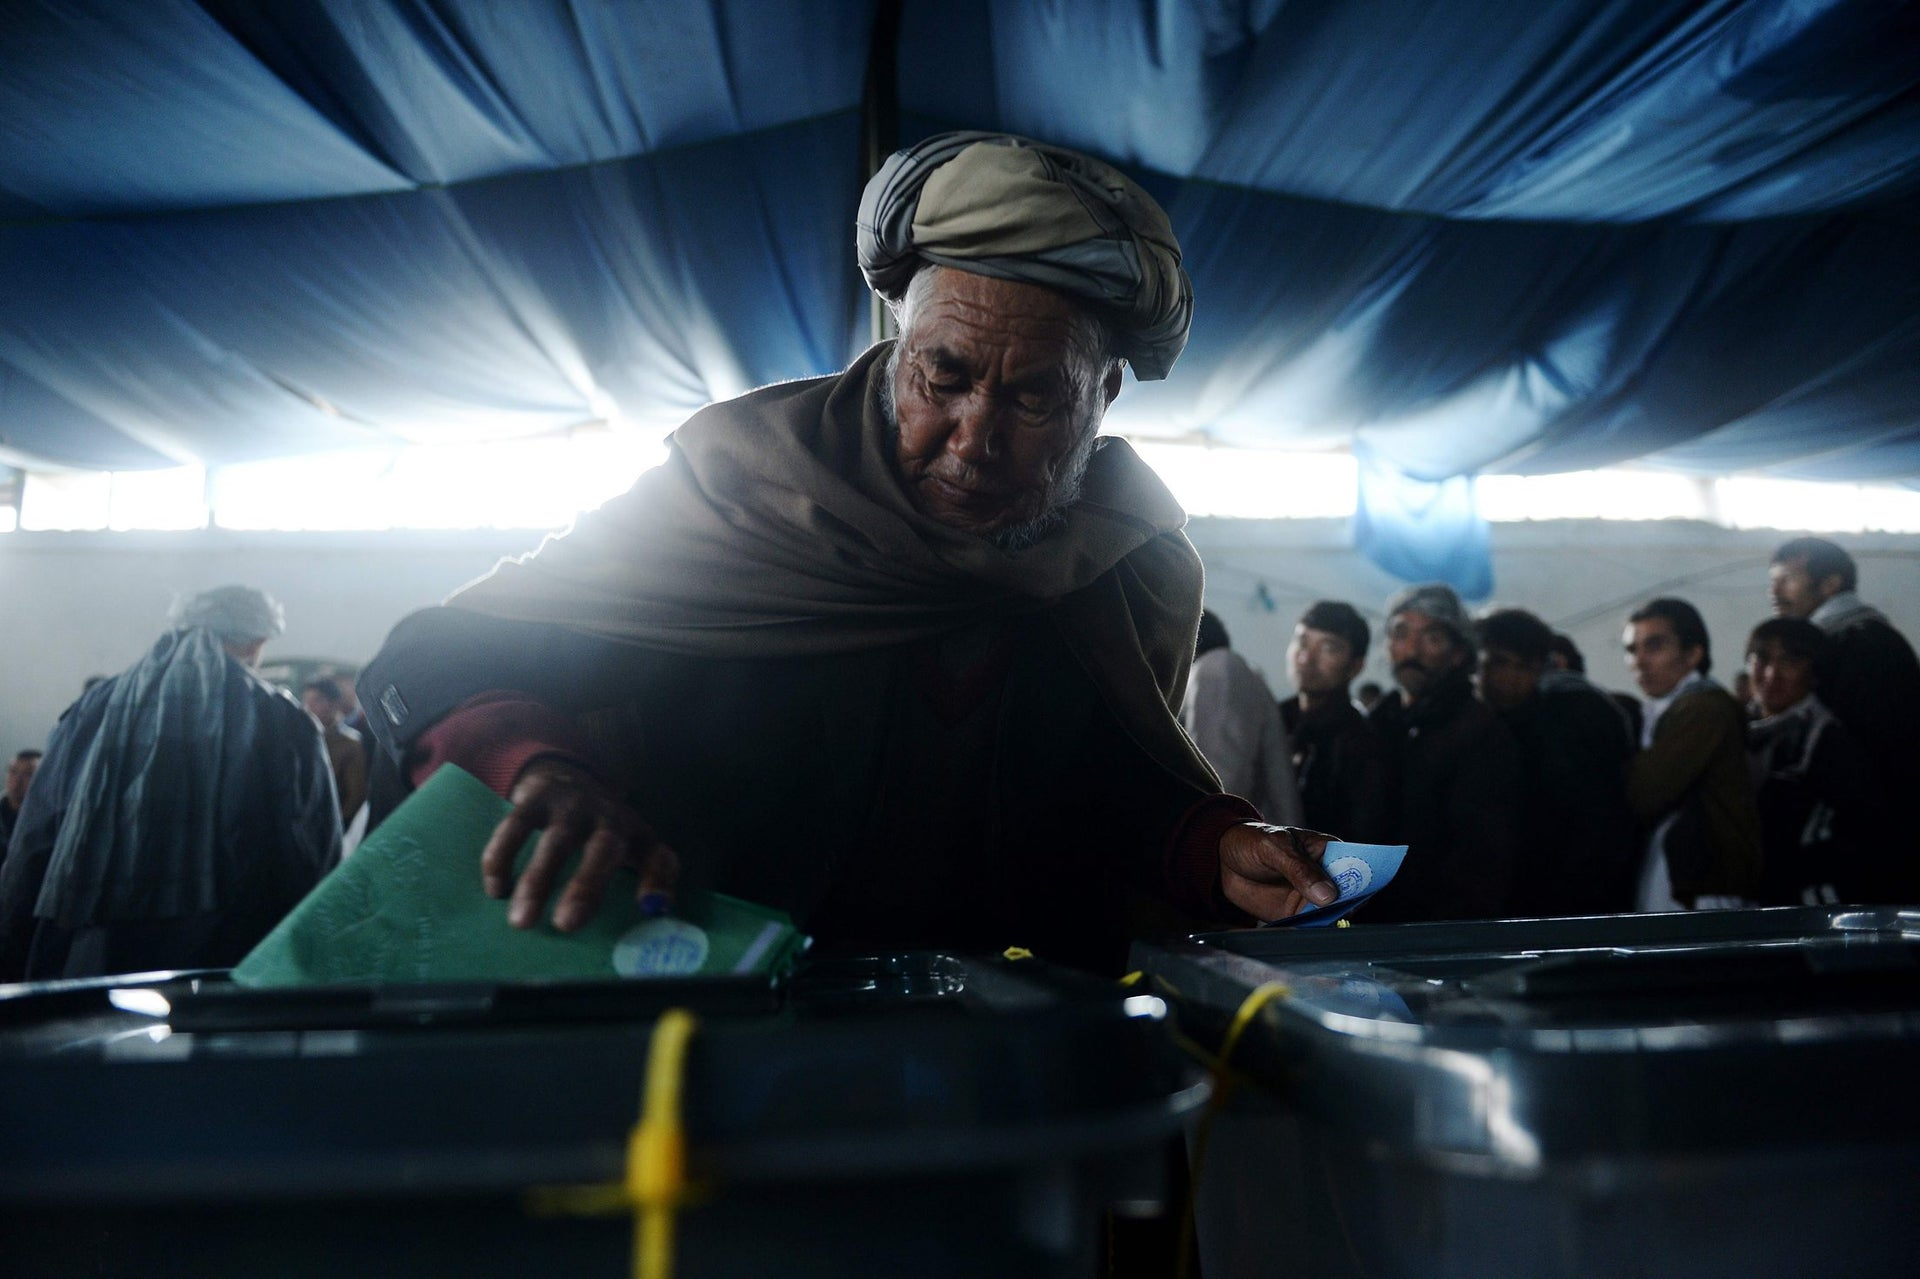 An Afghan man casts his vote at a local polling station in Kabul, April 5, 2014.